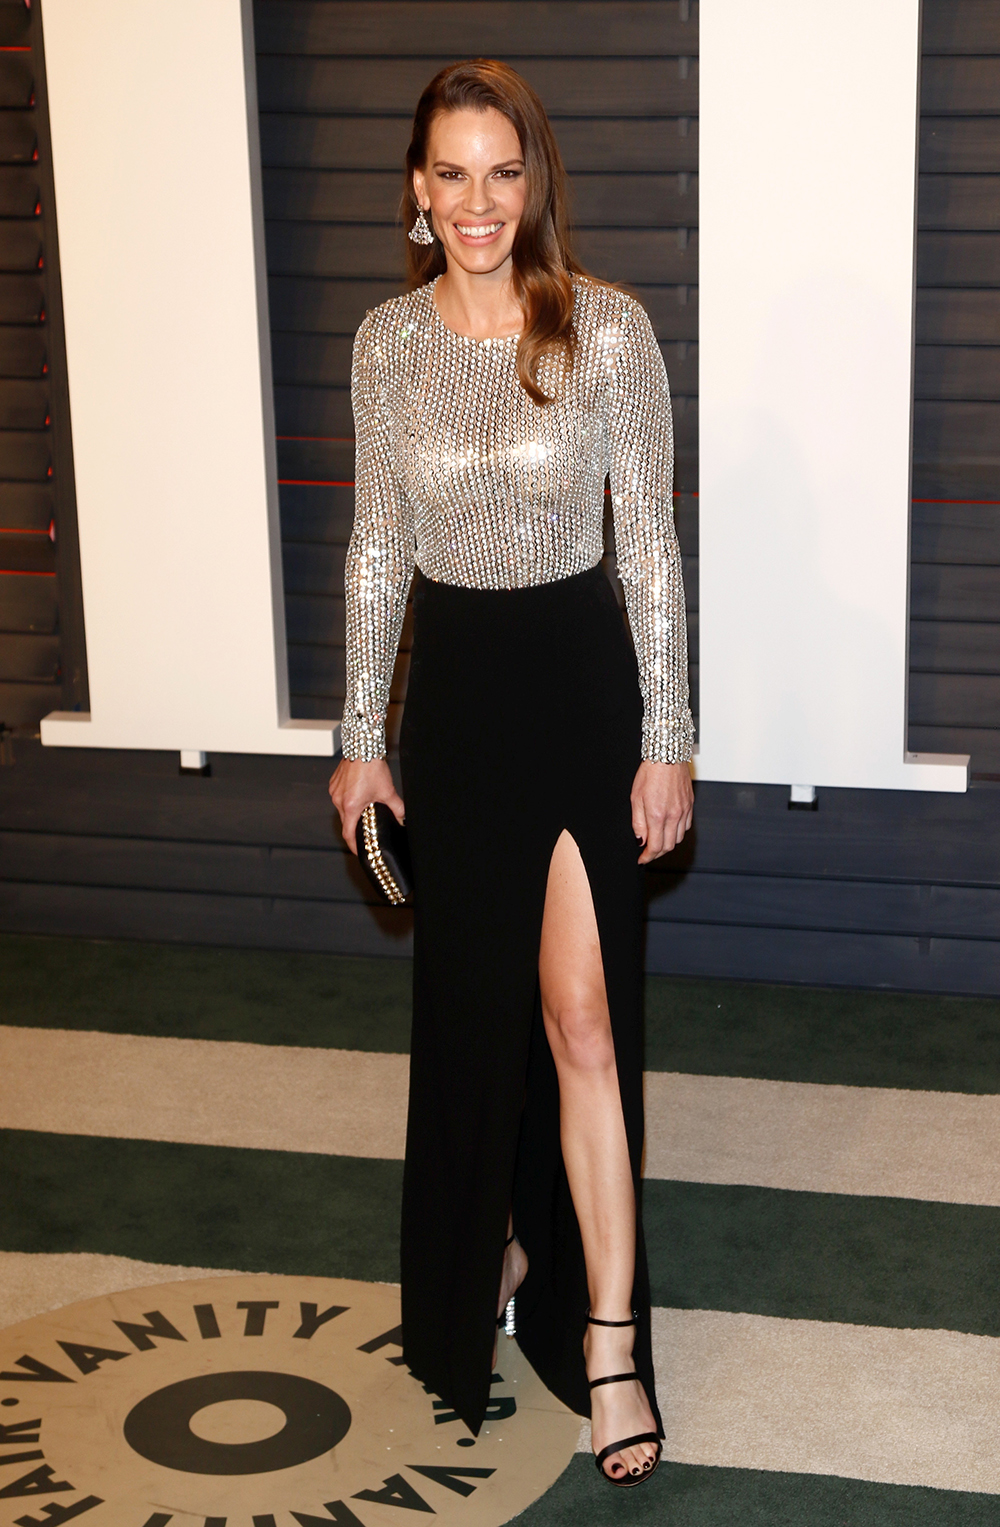 Cele|bitchy | Hilary Swank adds her engagement to the ...